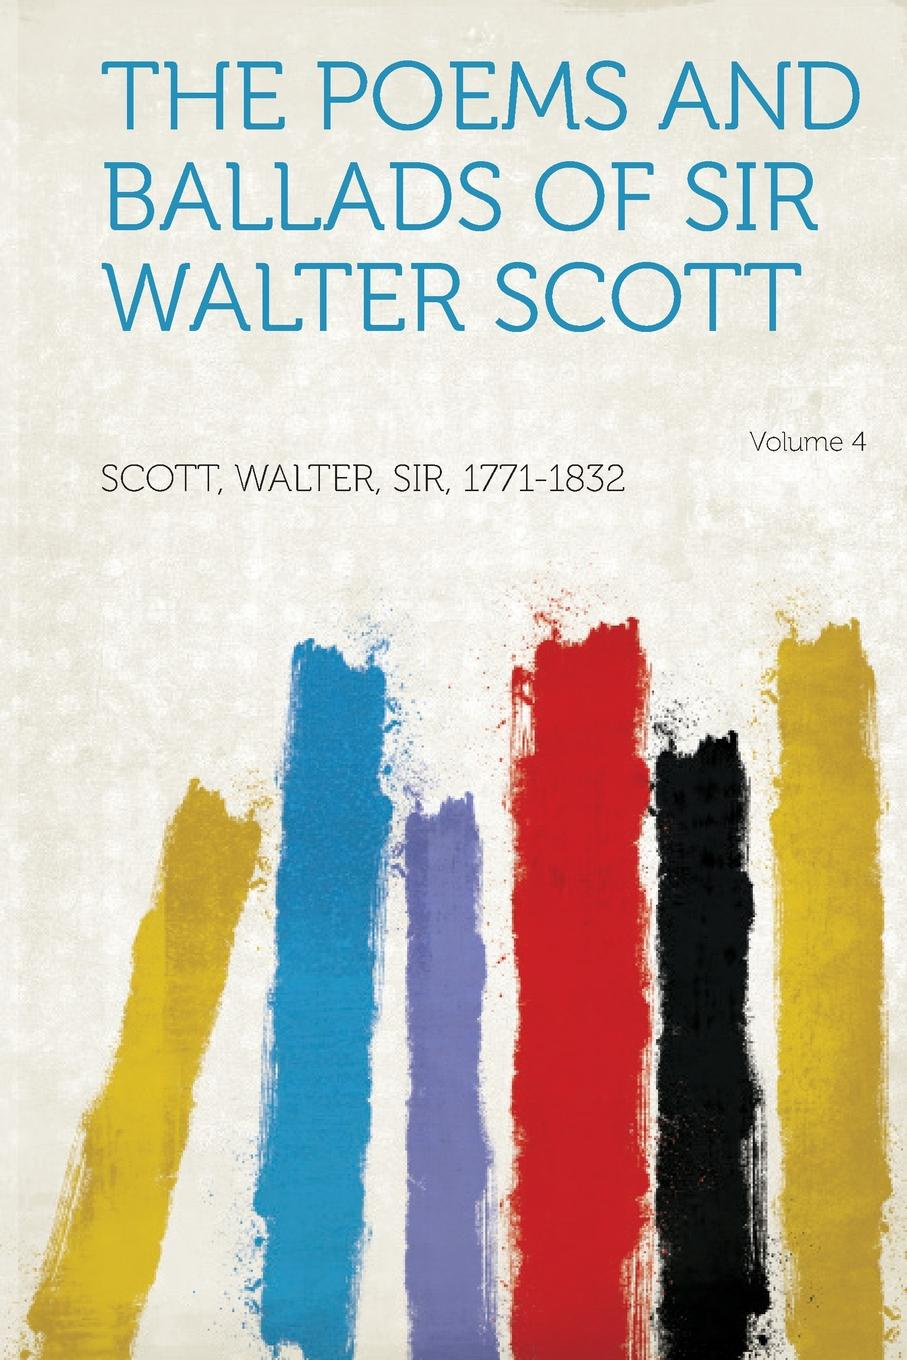 The Poems and Ballads of Sir Walter Scott Volume 4